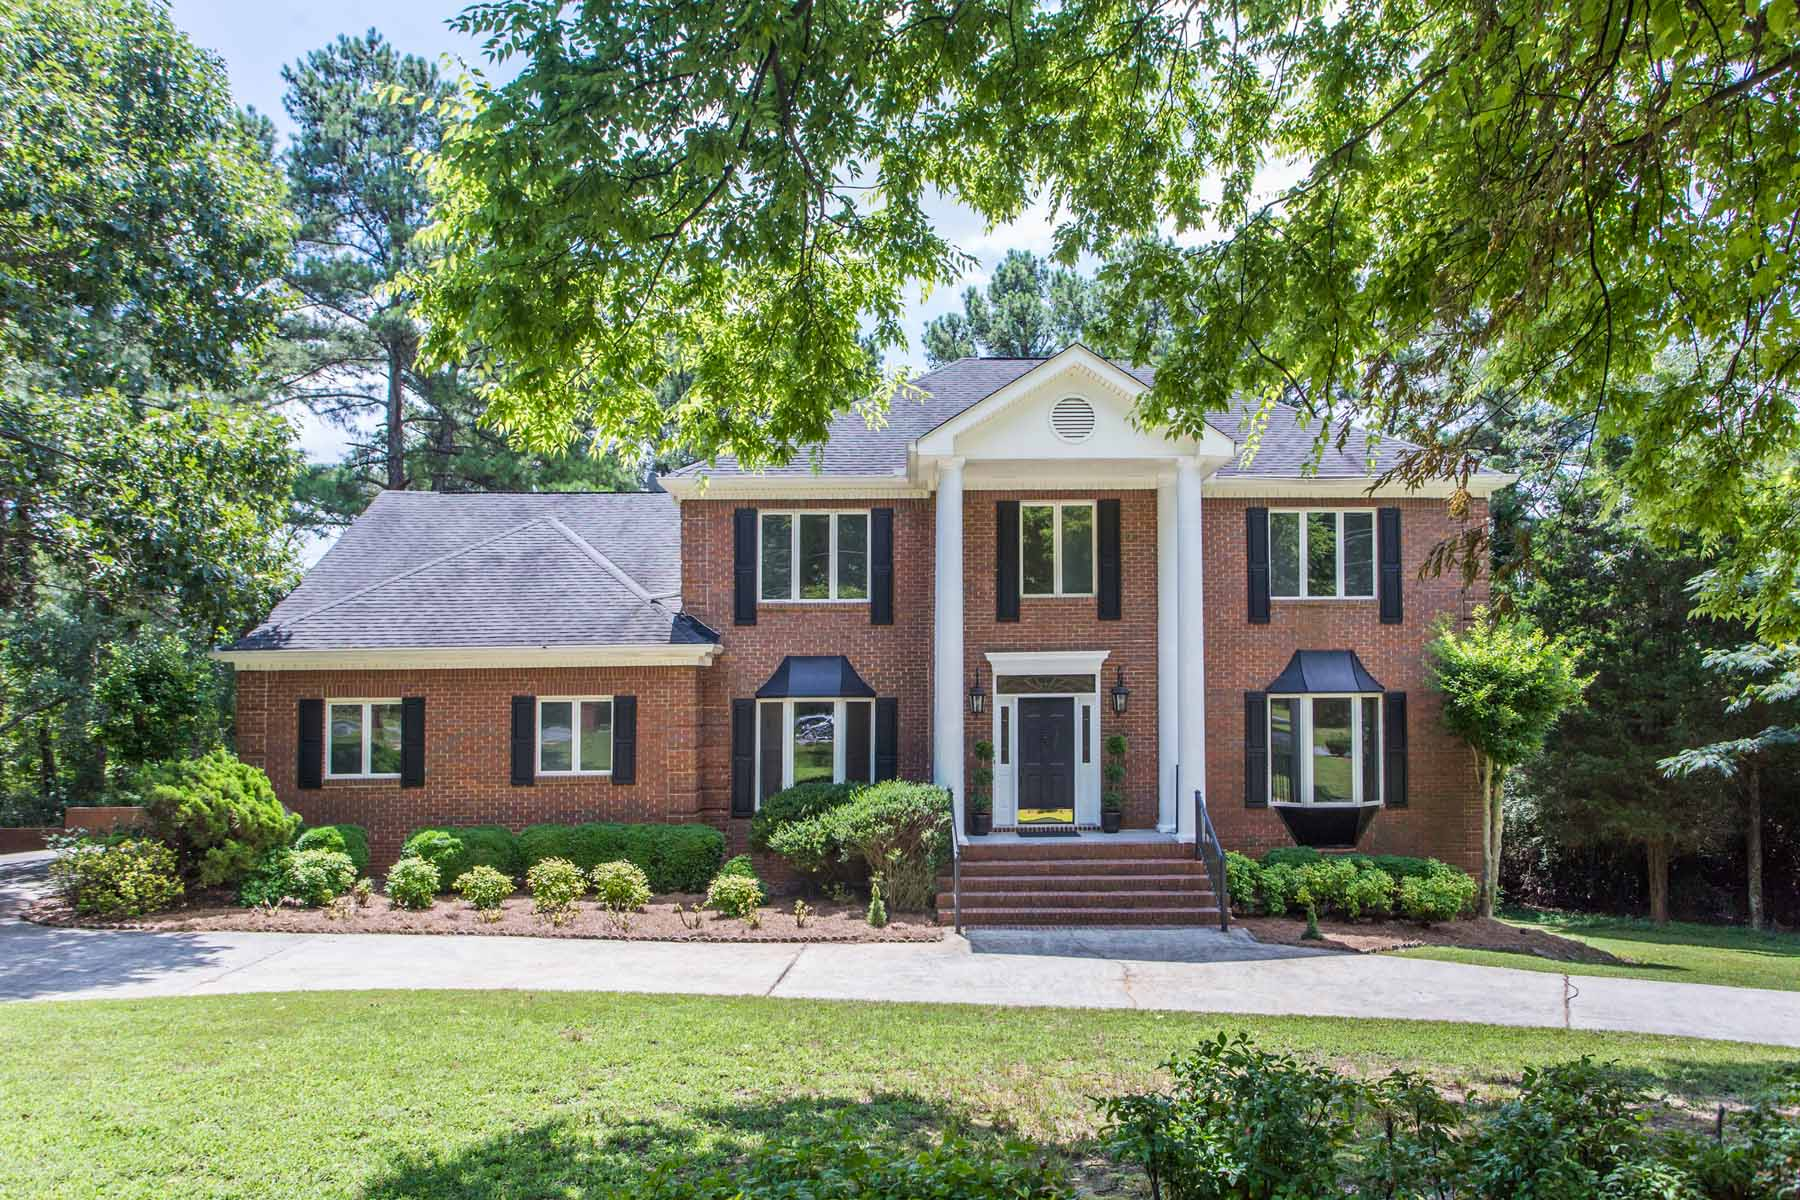 Single Family Home for Sale at Timeless Georgian Brick 7775 Jett Ferry Road Dunwoody, Georgia, 30350 United States